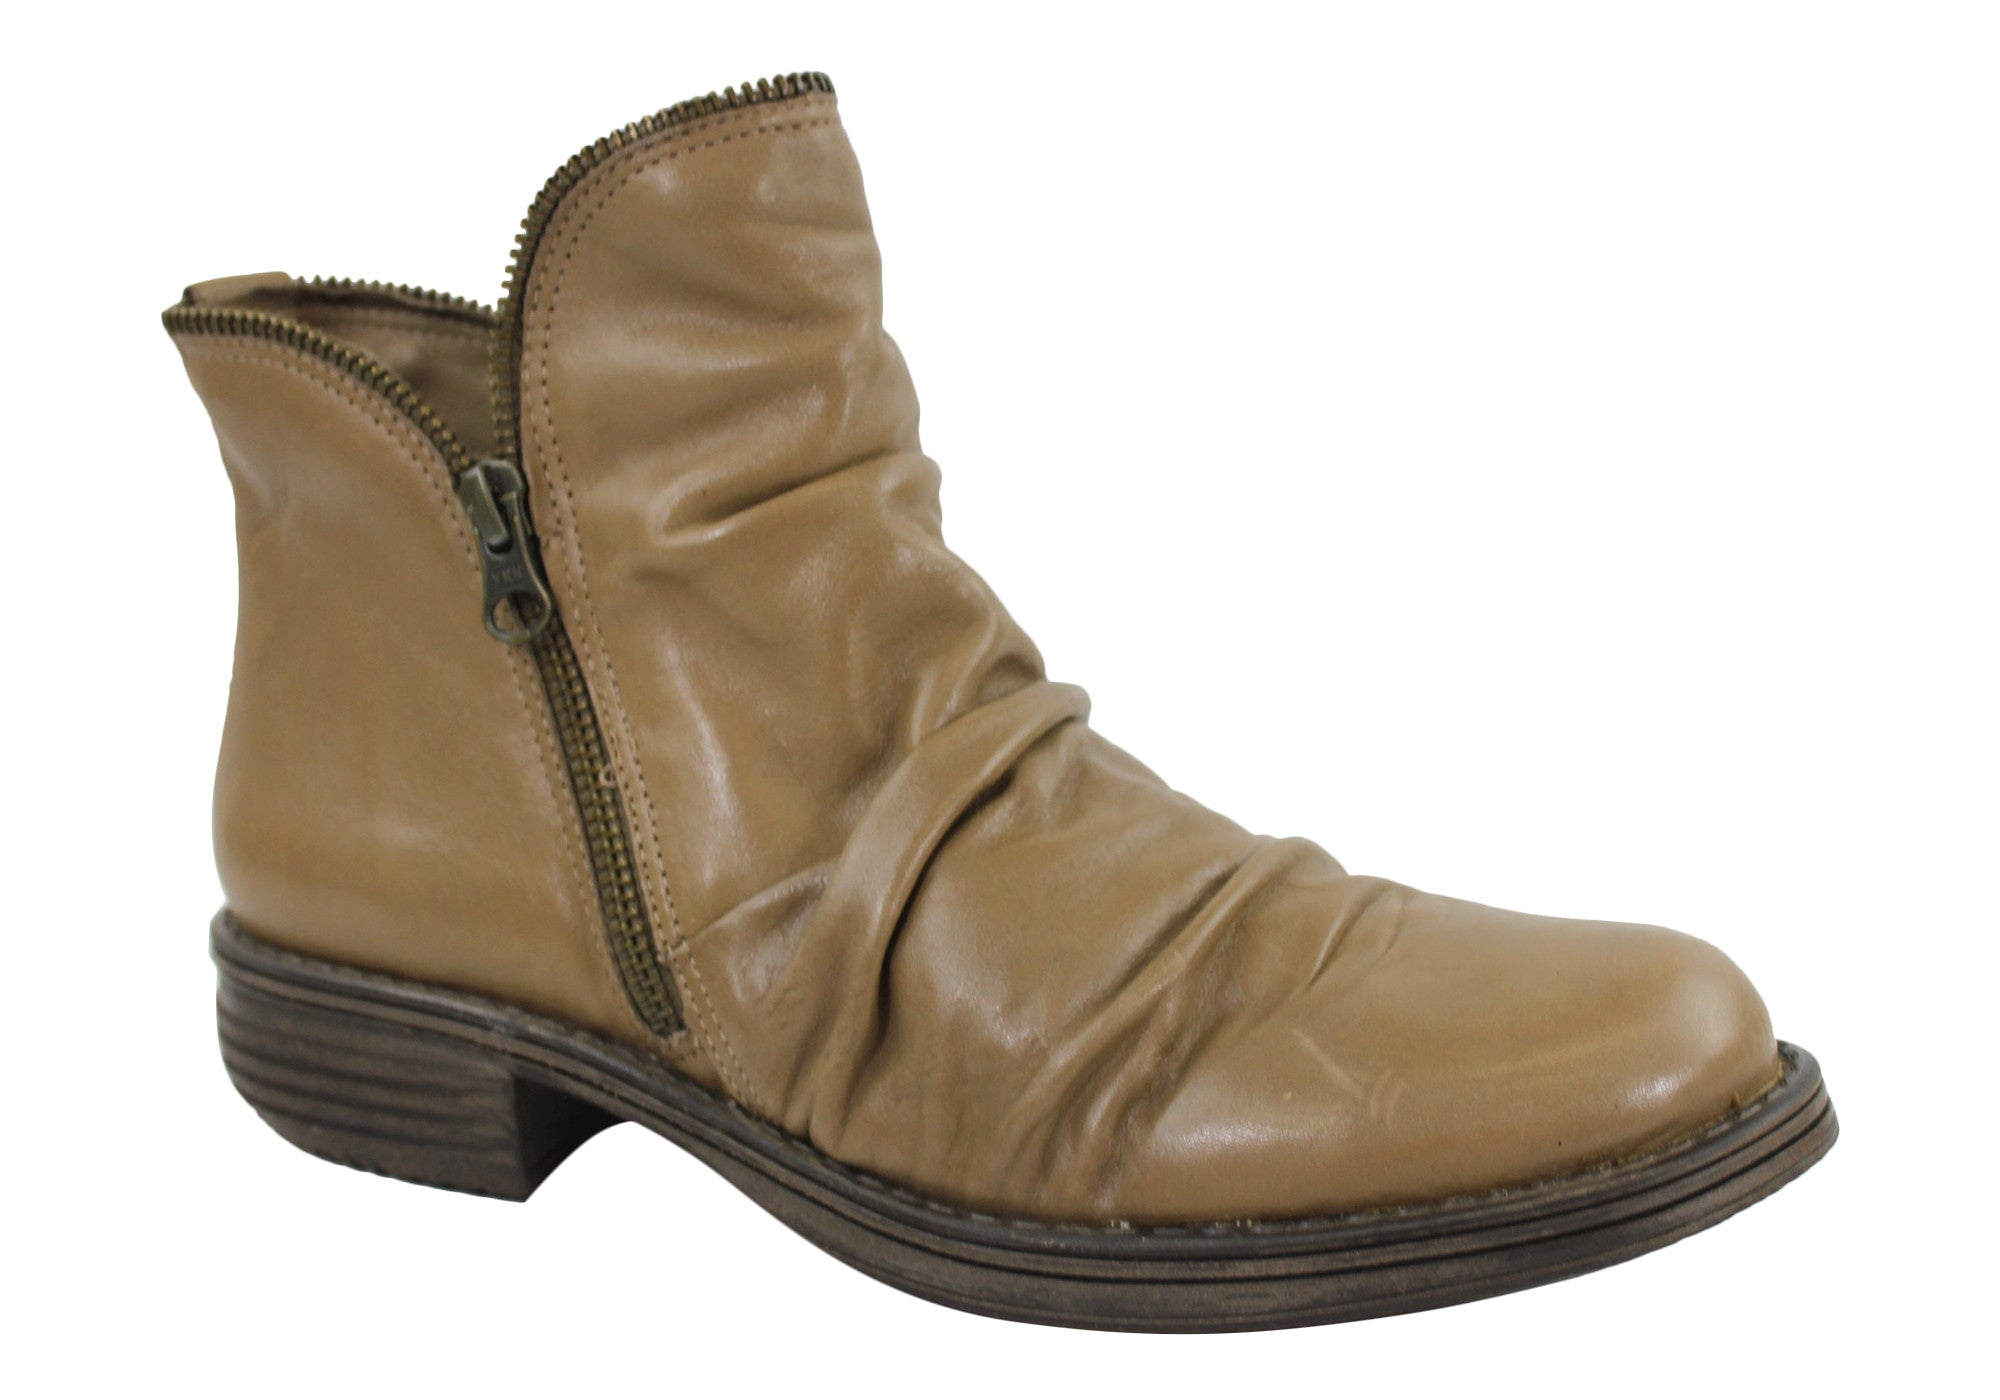 Gino Ventori Solution Womens Ankle Boots Made In Brazil